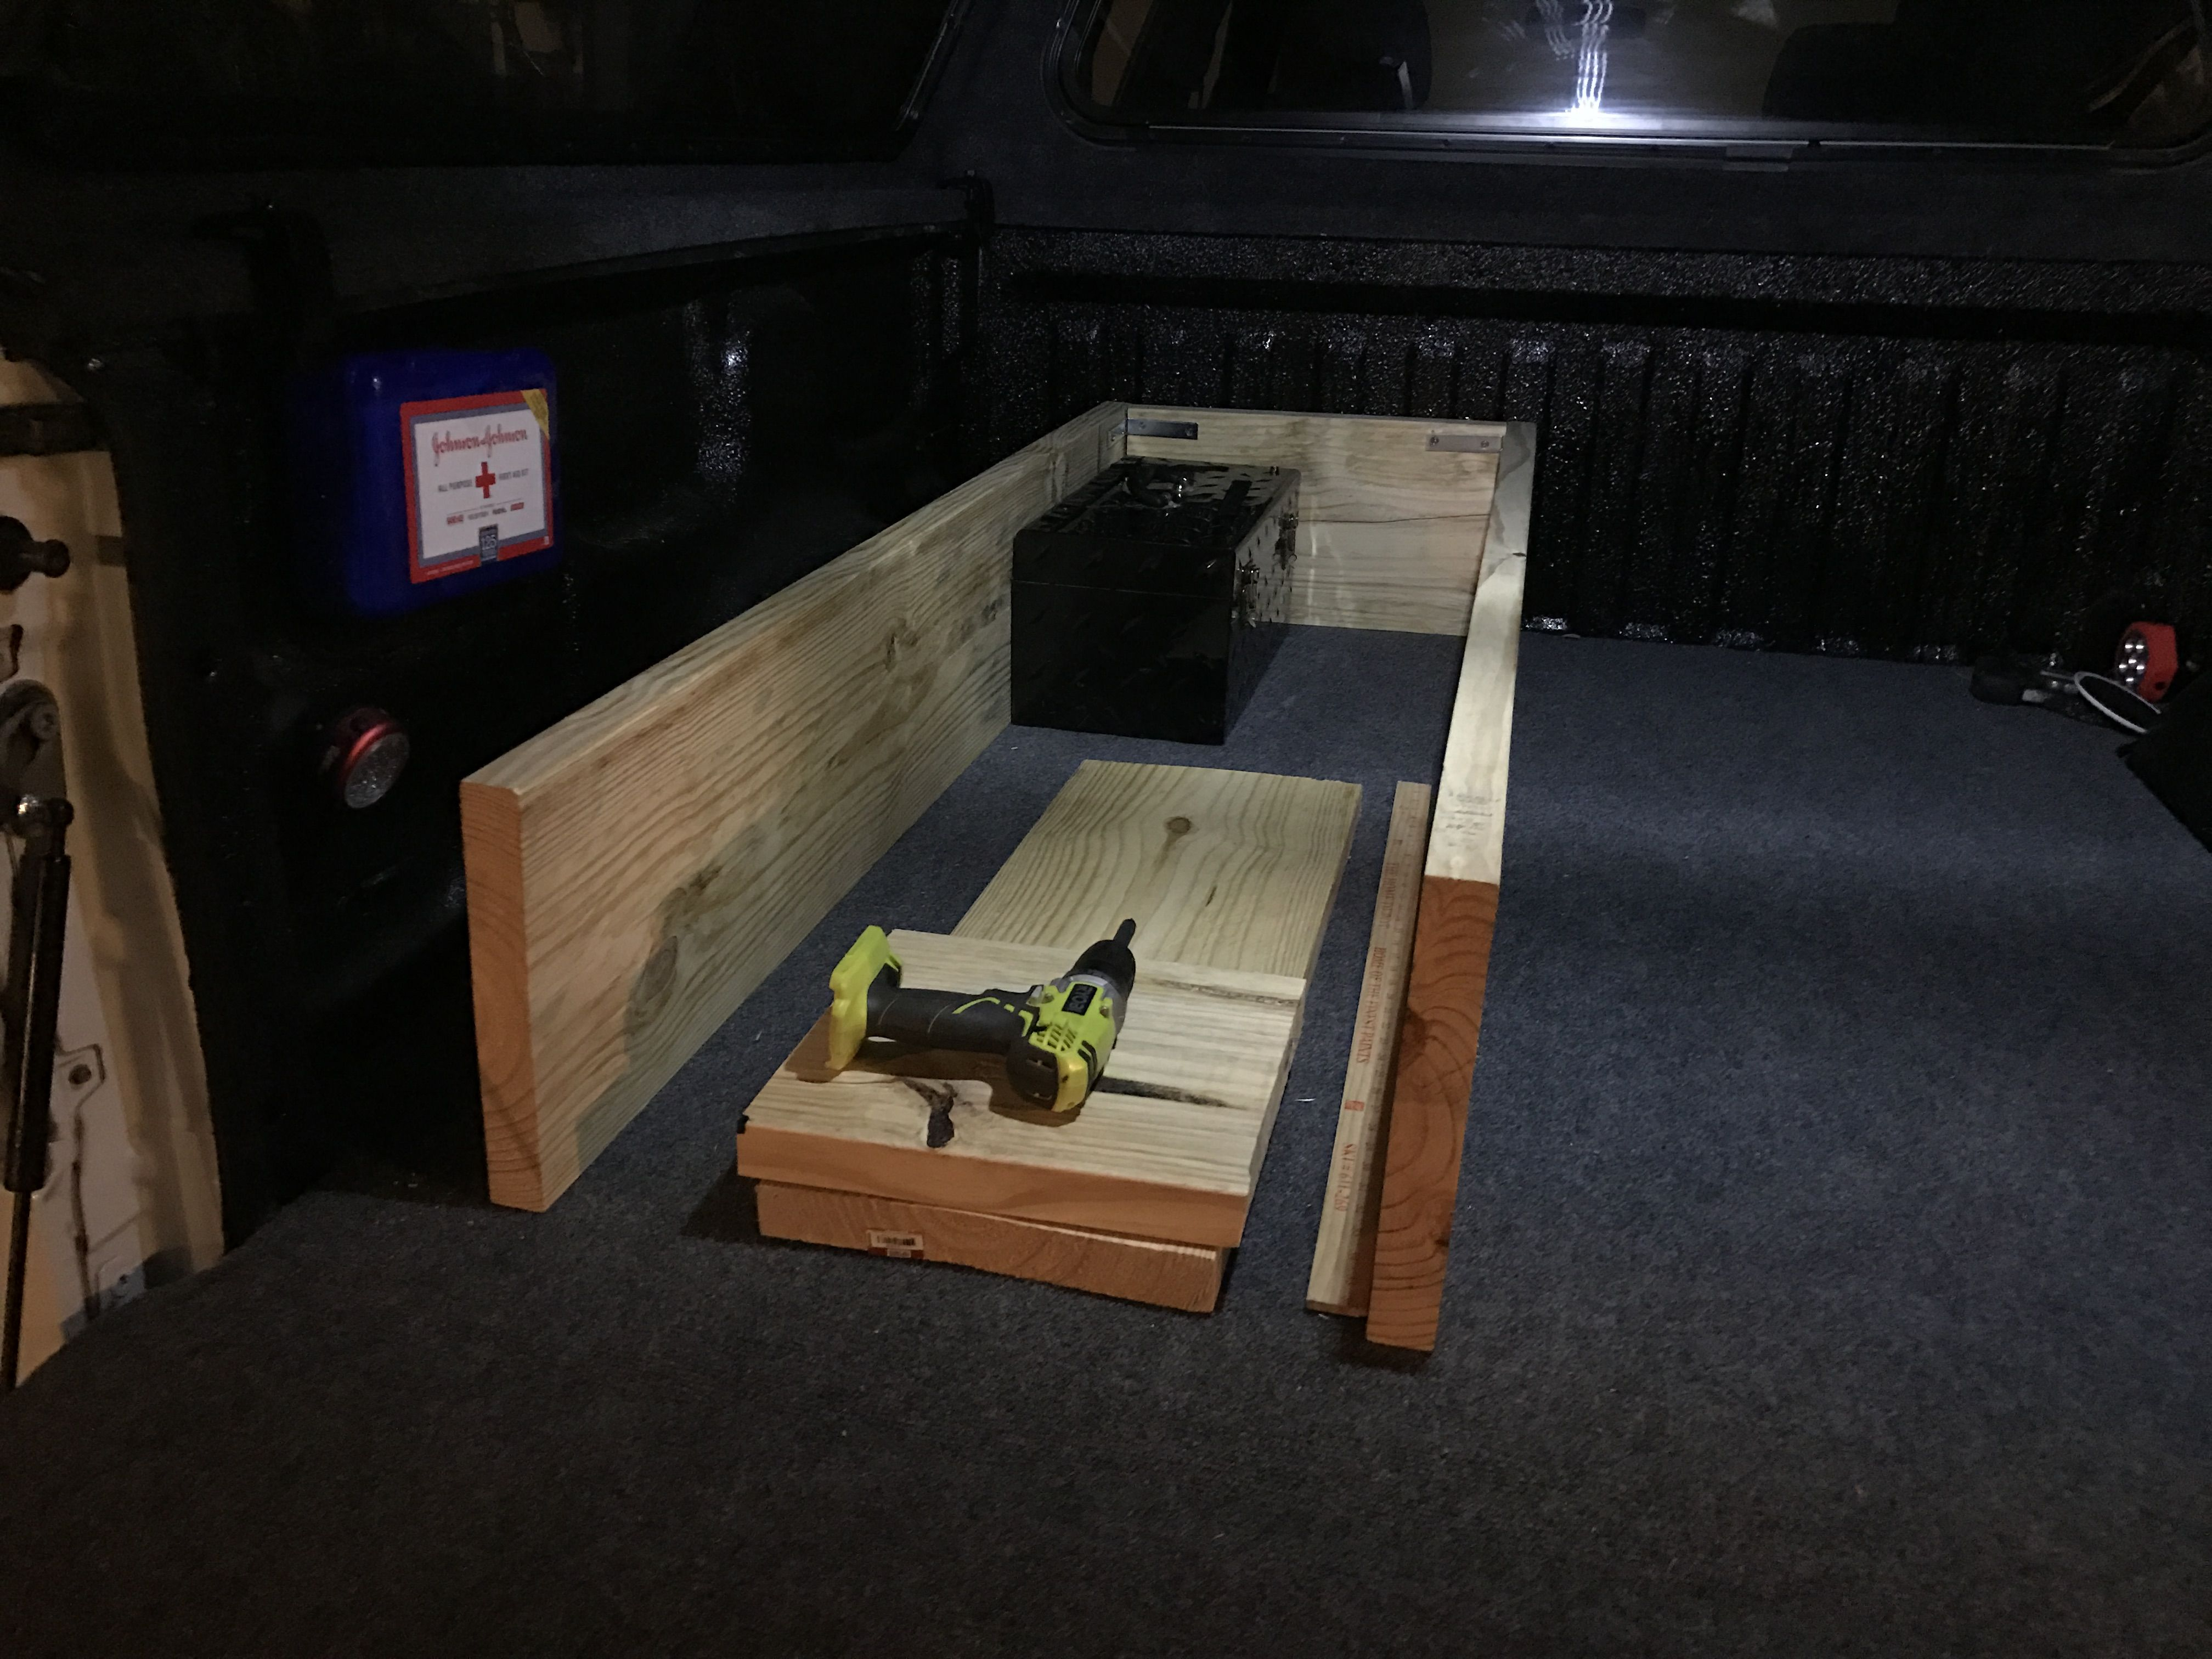 Used 2x12 S And 3 4 In Plywood To Build The Box Secured 12